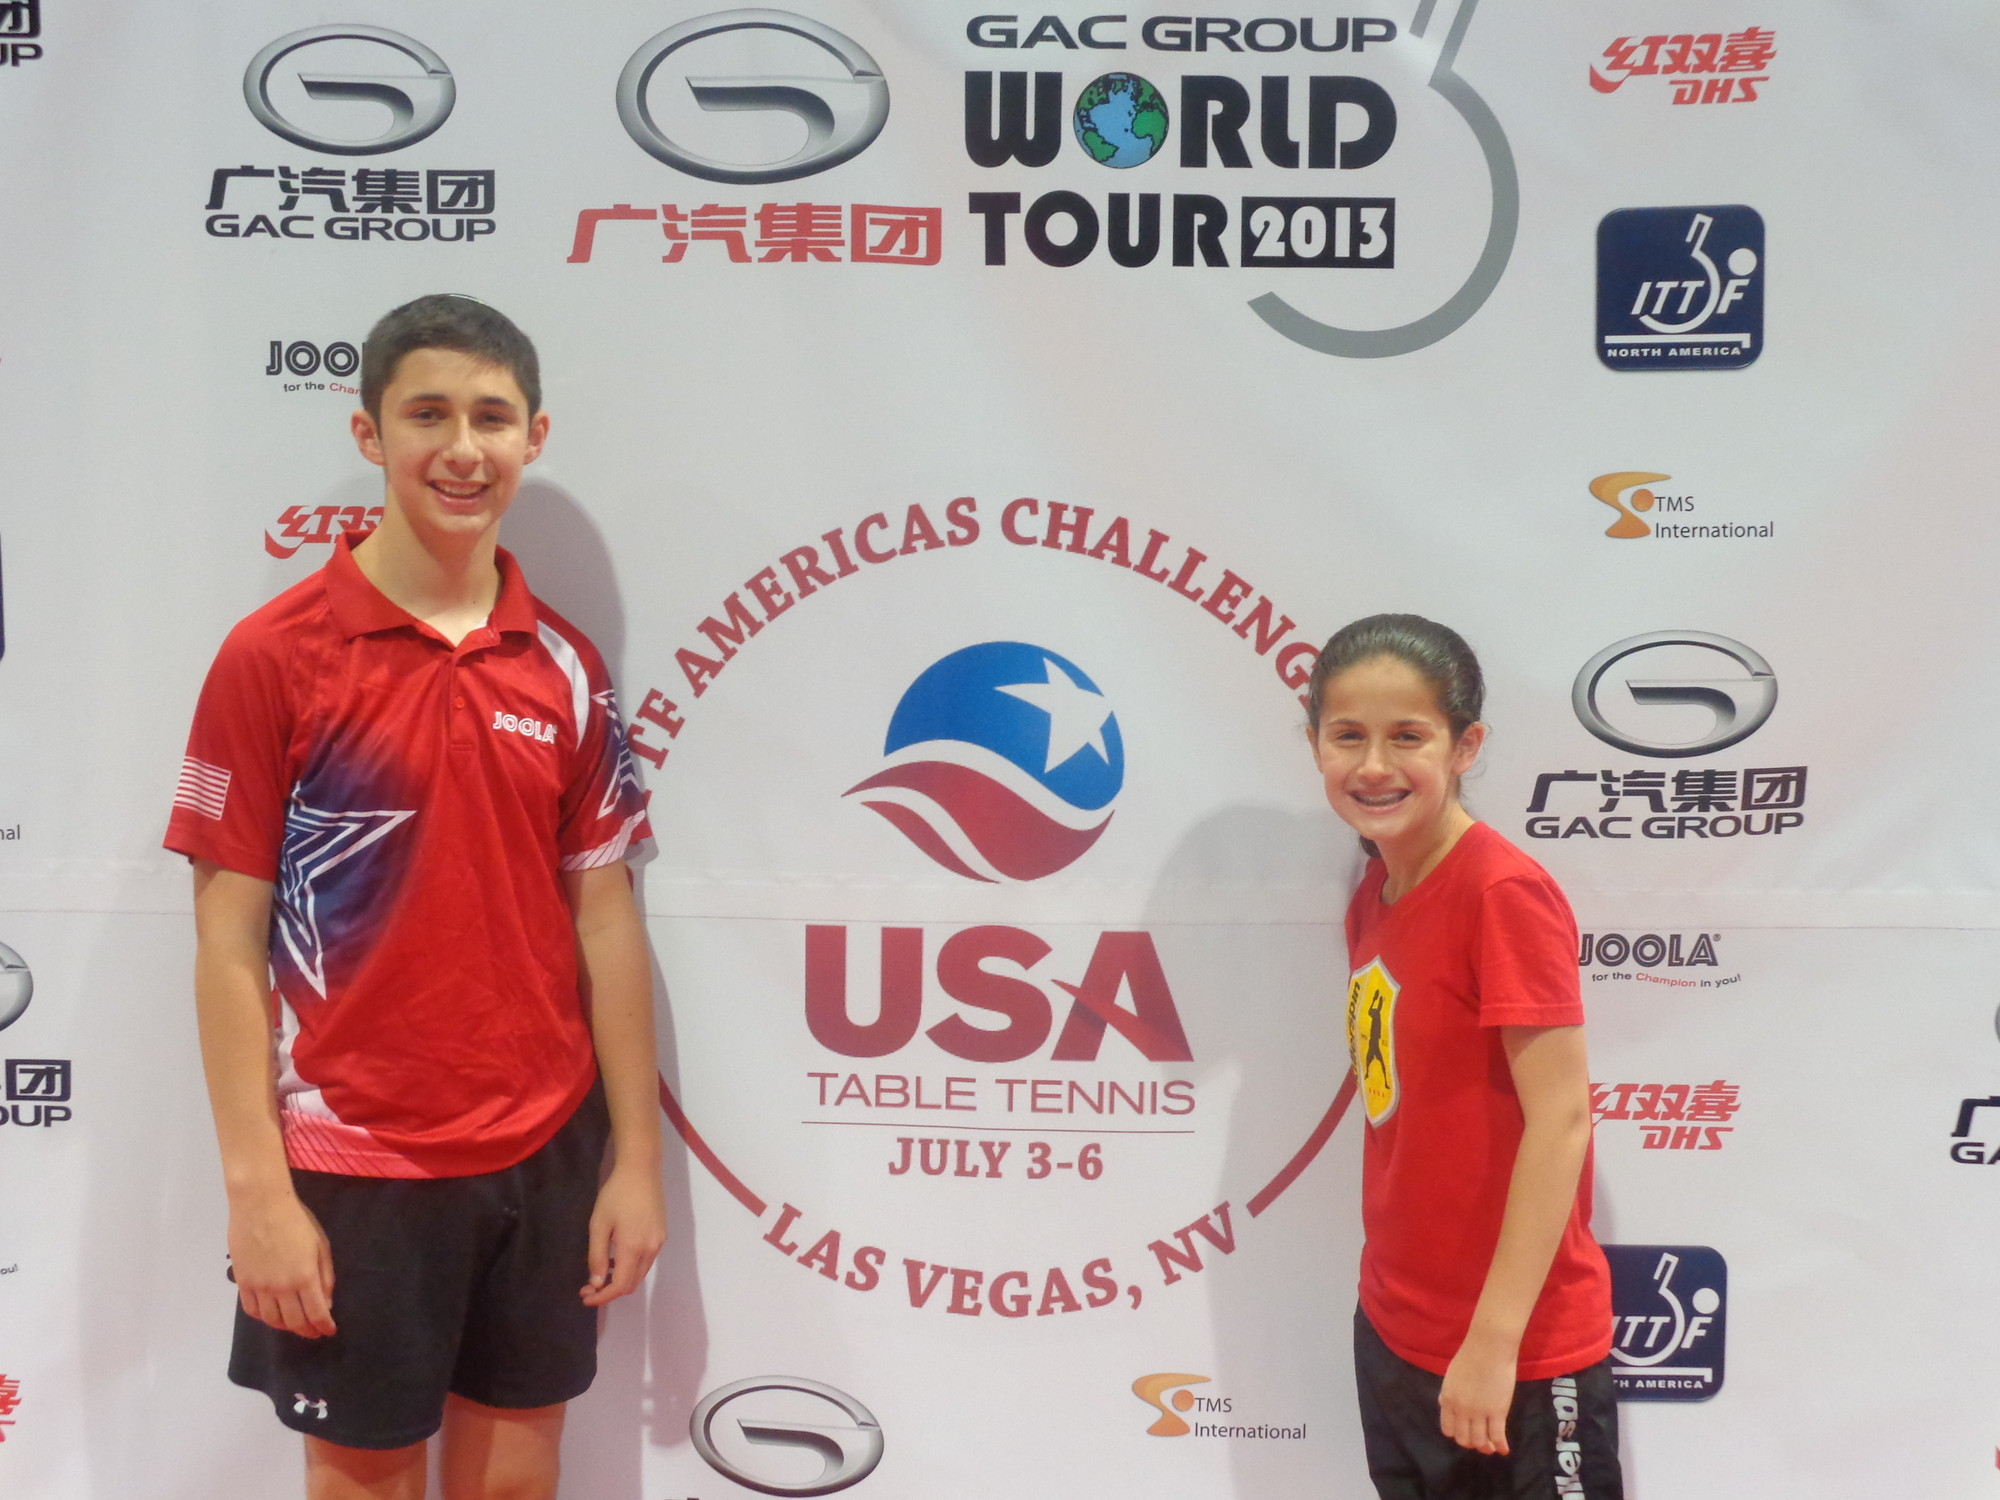 The Ackermans recently competed in America�s Cup Challenge at the Las Vegas convention center, in which Estee finished with a record of 5-11.